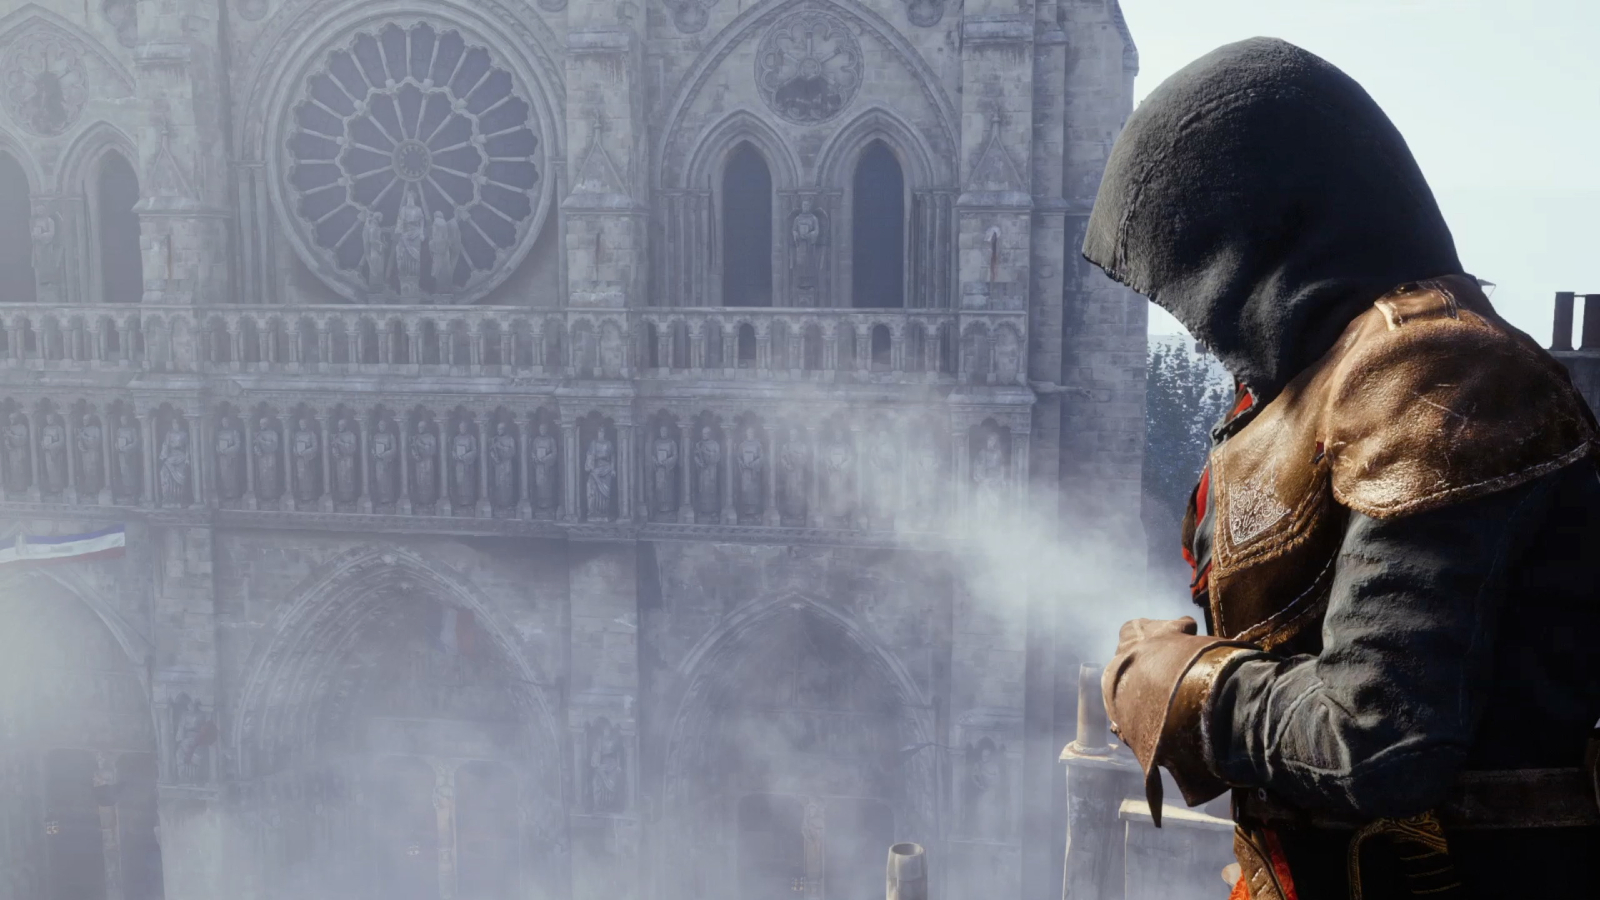 Assassin's Creed: Unity: fabric